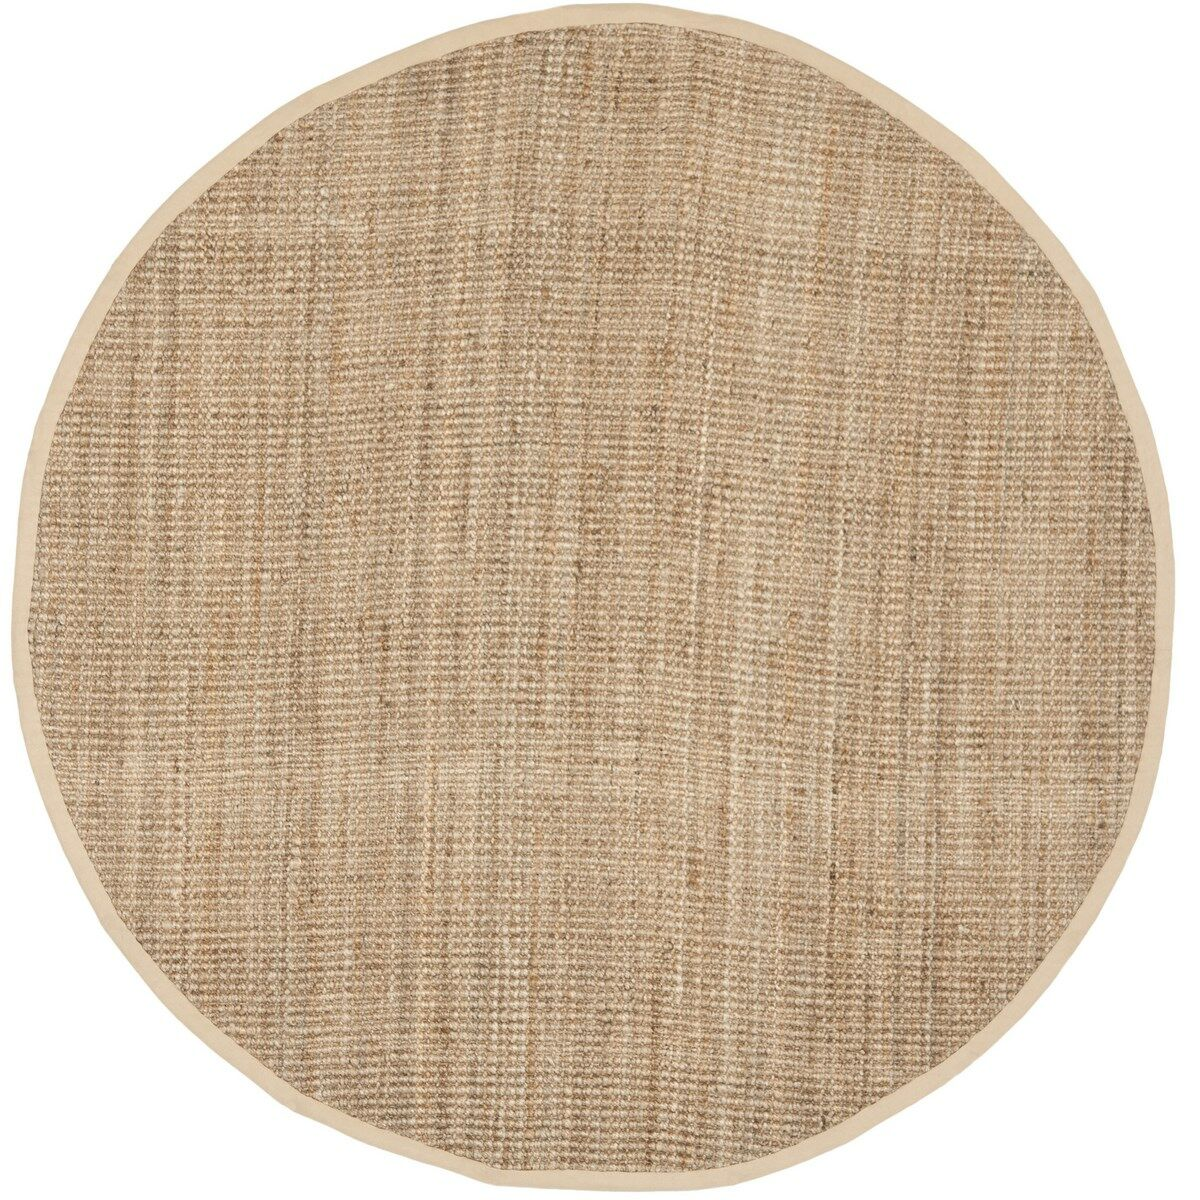 Calidia Hand-Loomed Beige Area Rug Rug Size: Rectangle 8' x 10'